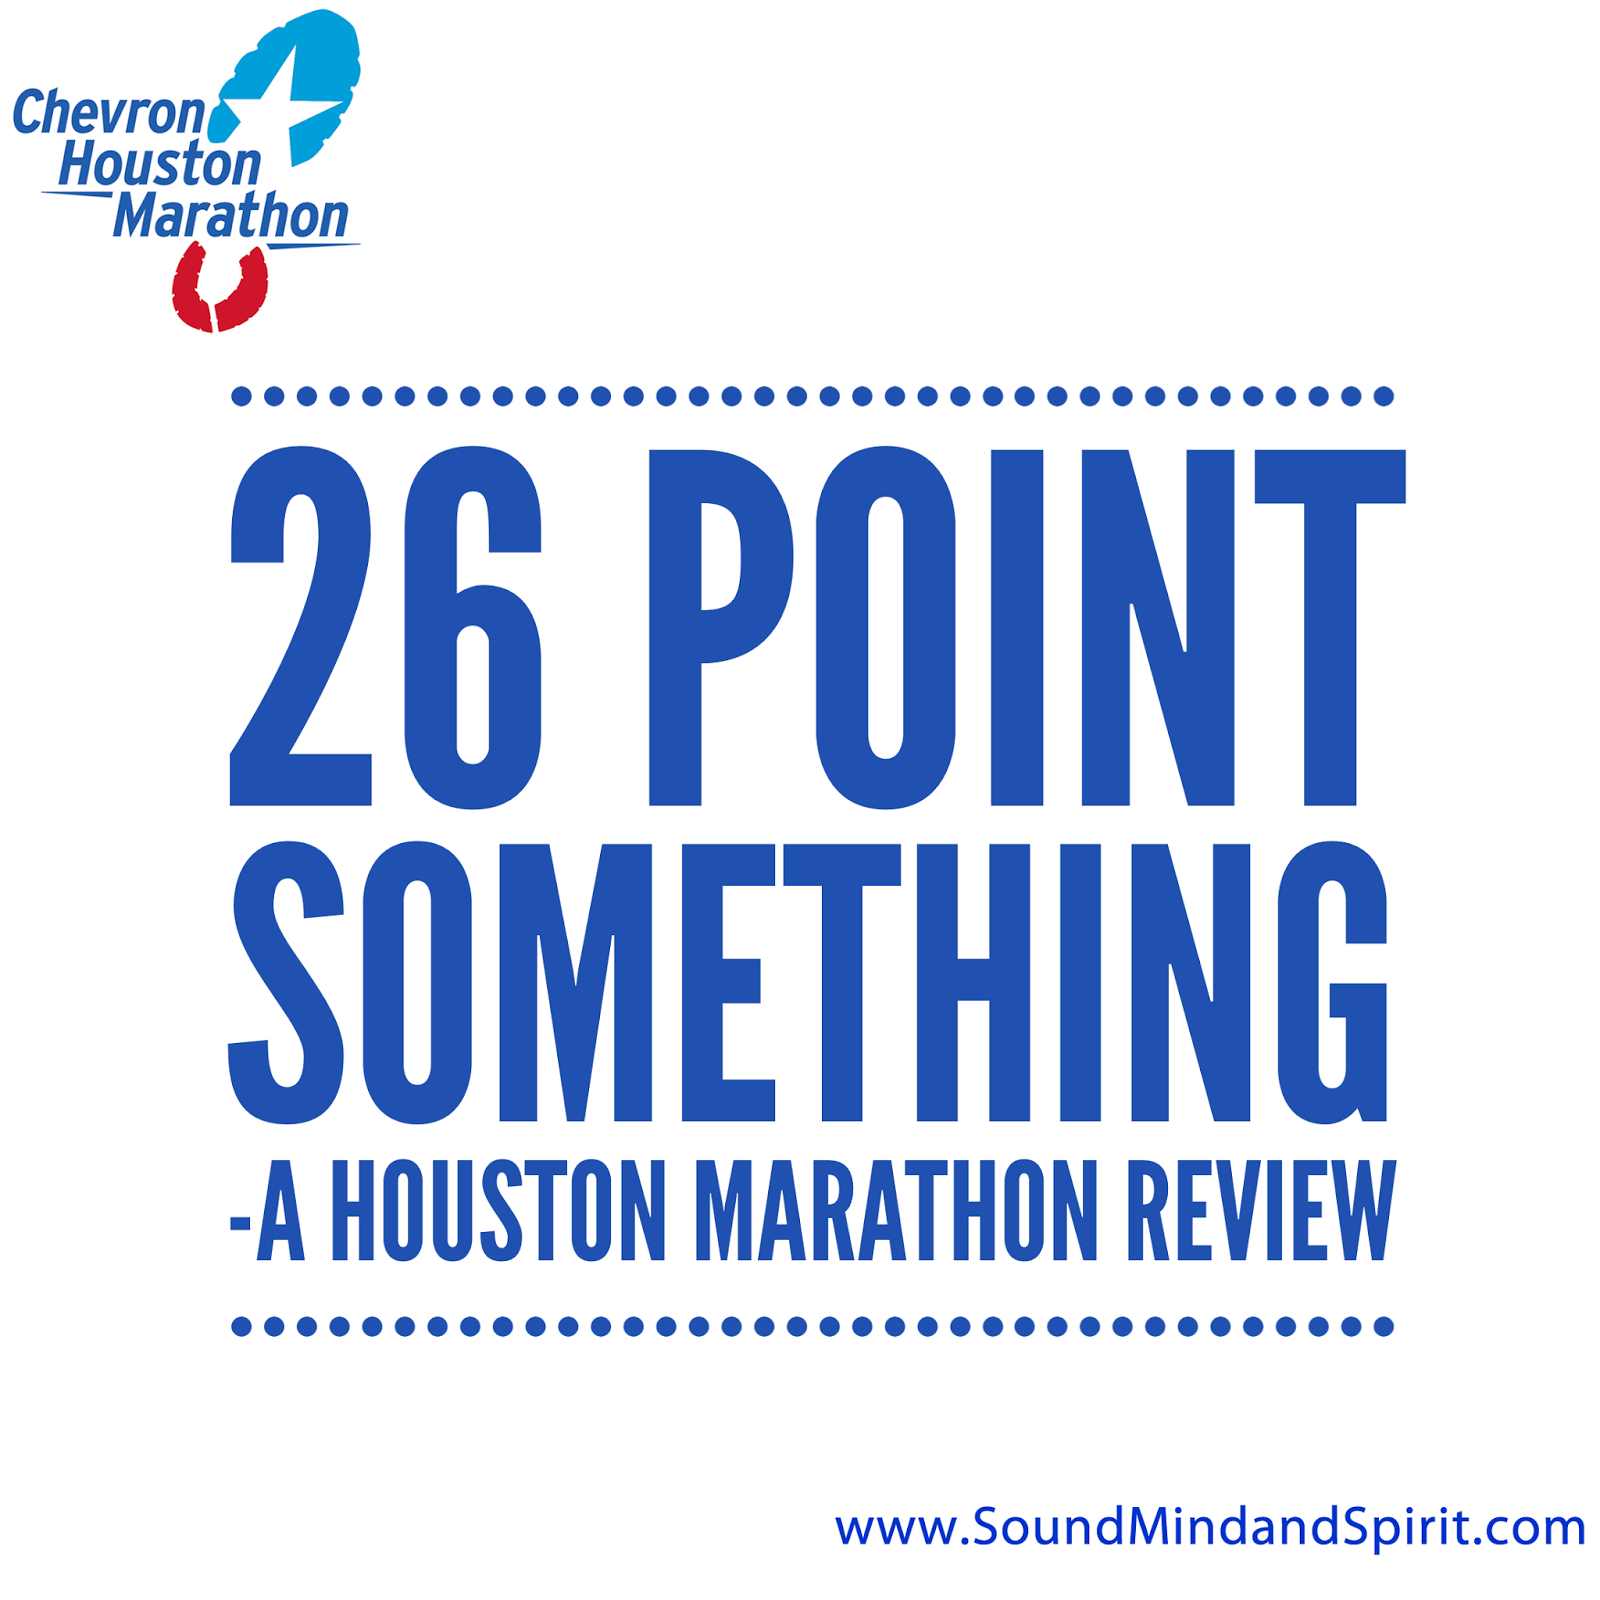 26 Point Something - A Chevron Houston Marathon Review